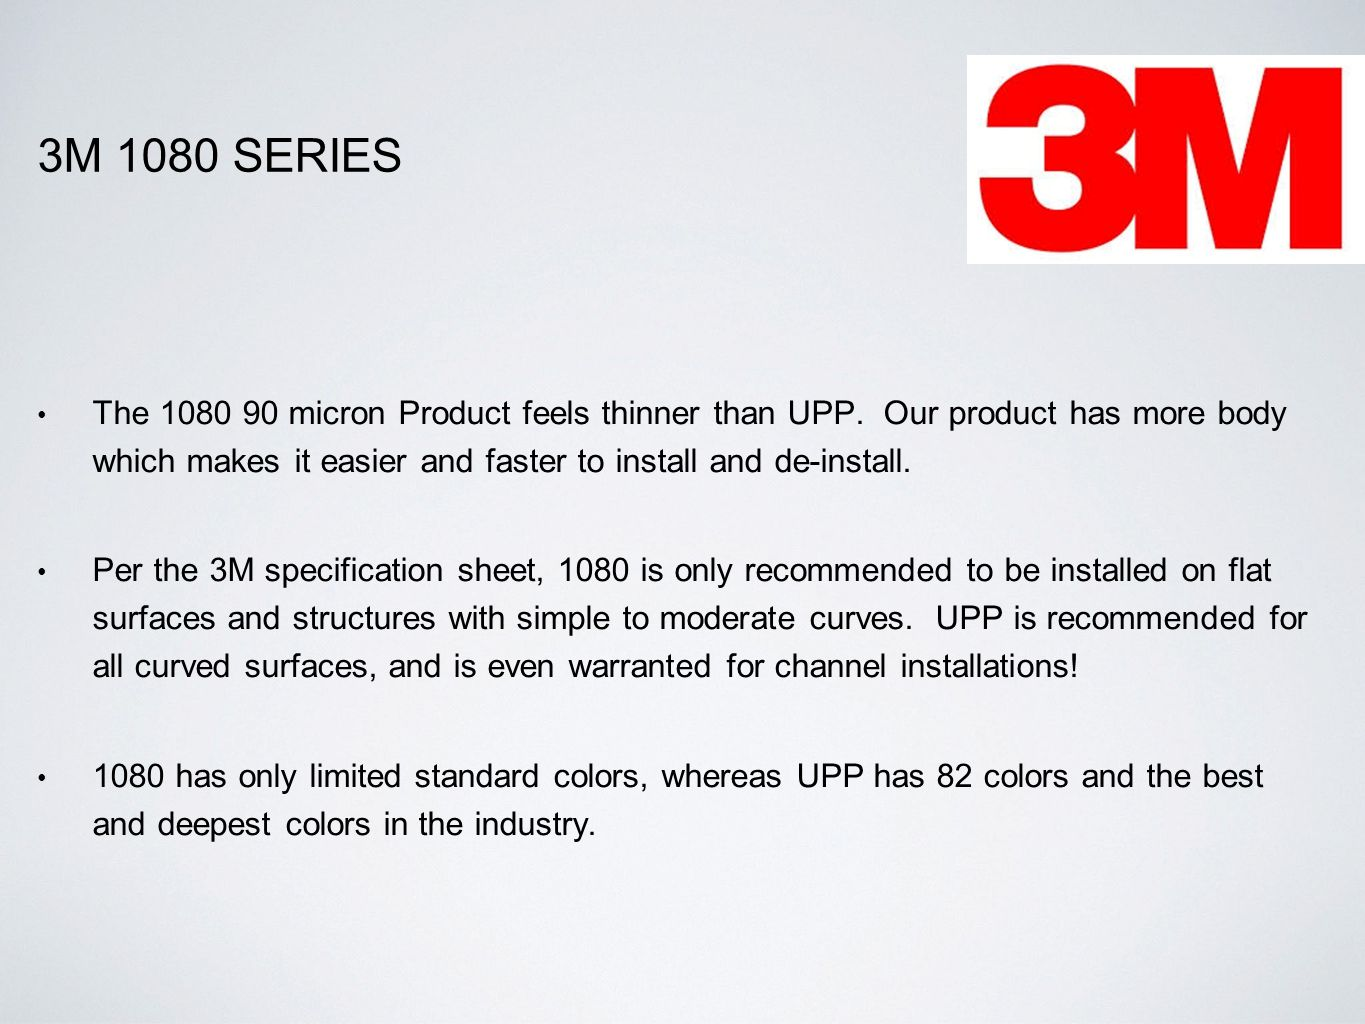 3M 1080 SERIES The 1080 90 micron Product feels thinner than UPP.